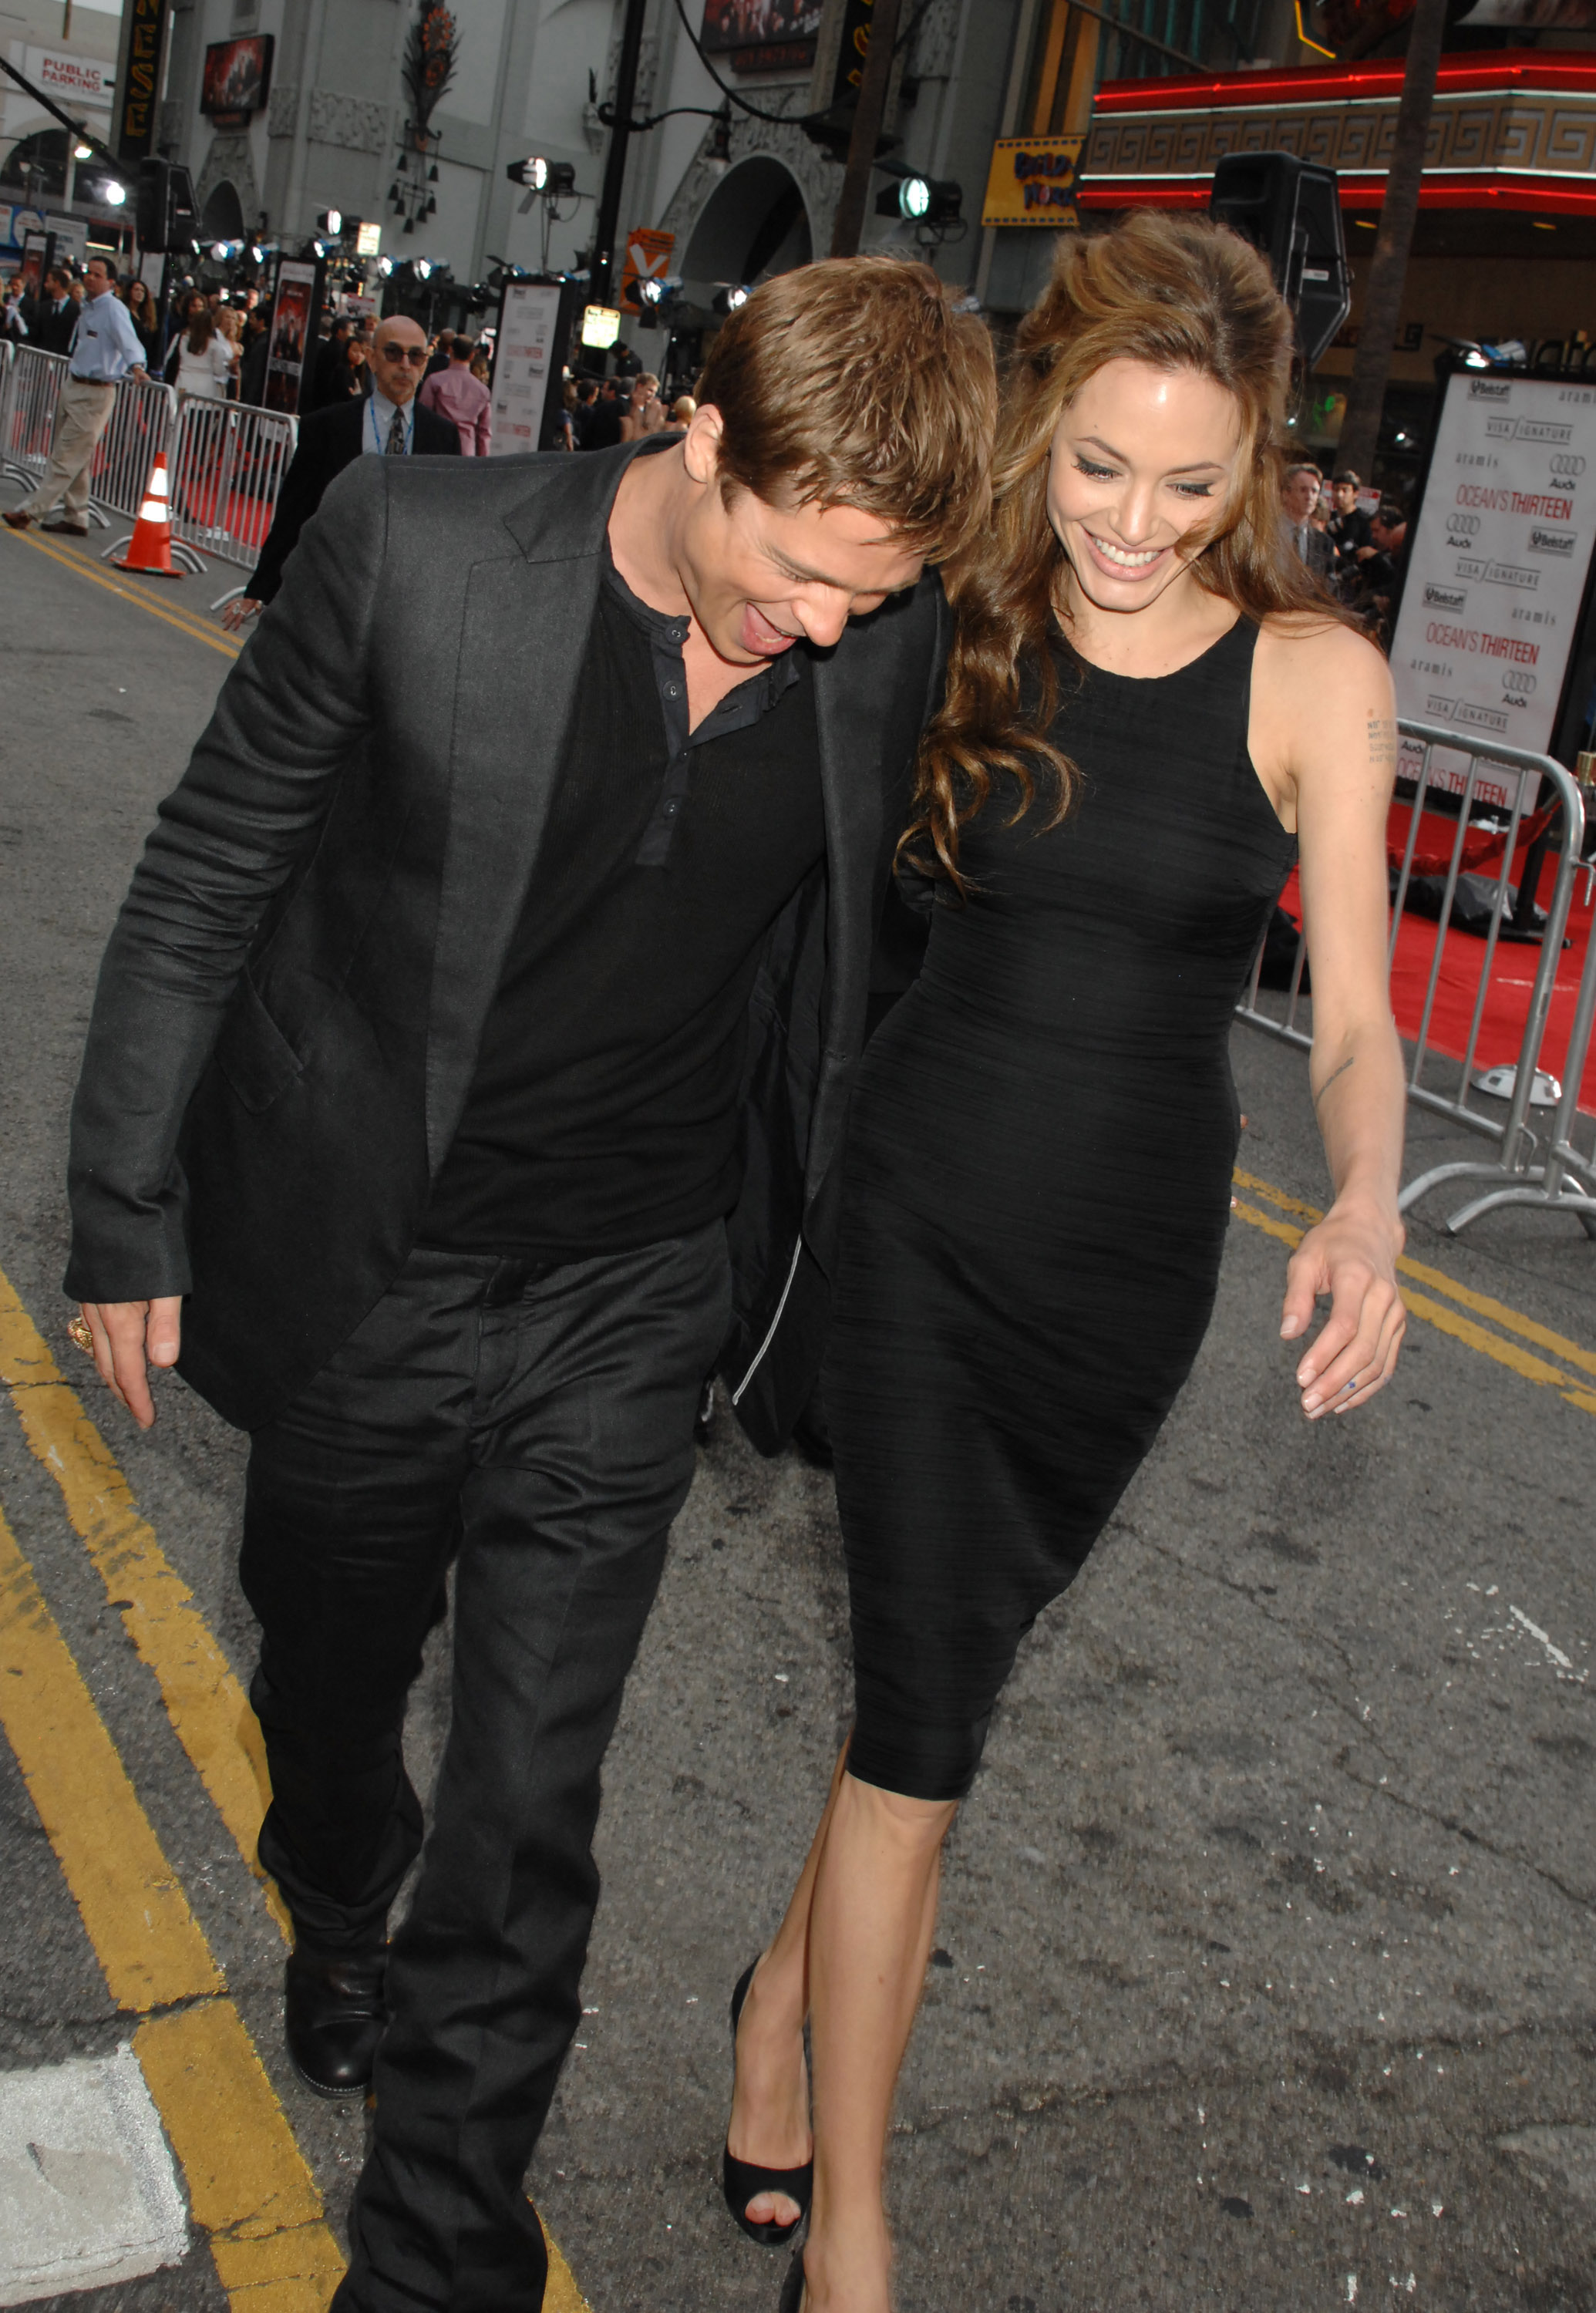 Brad Pitt and Angelina Jolie were full of laughs at the June 2007 LA premiere of his Ocean's Thirteen.